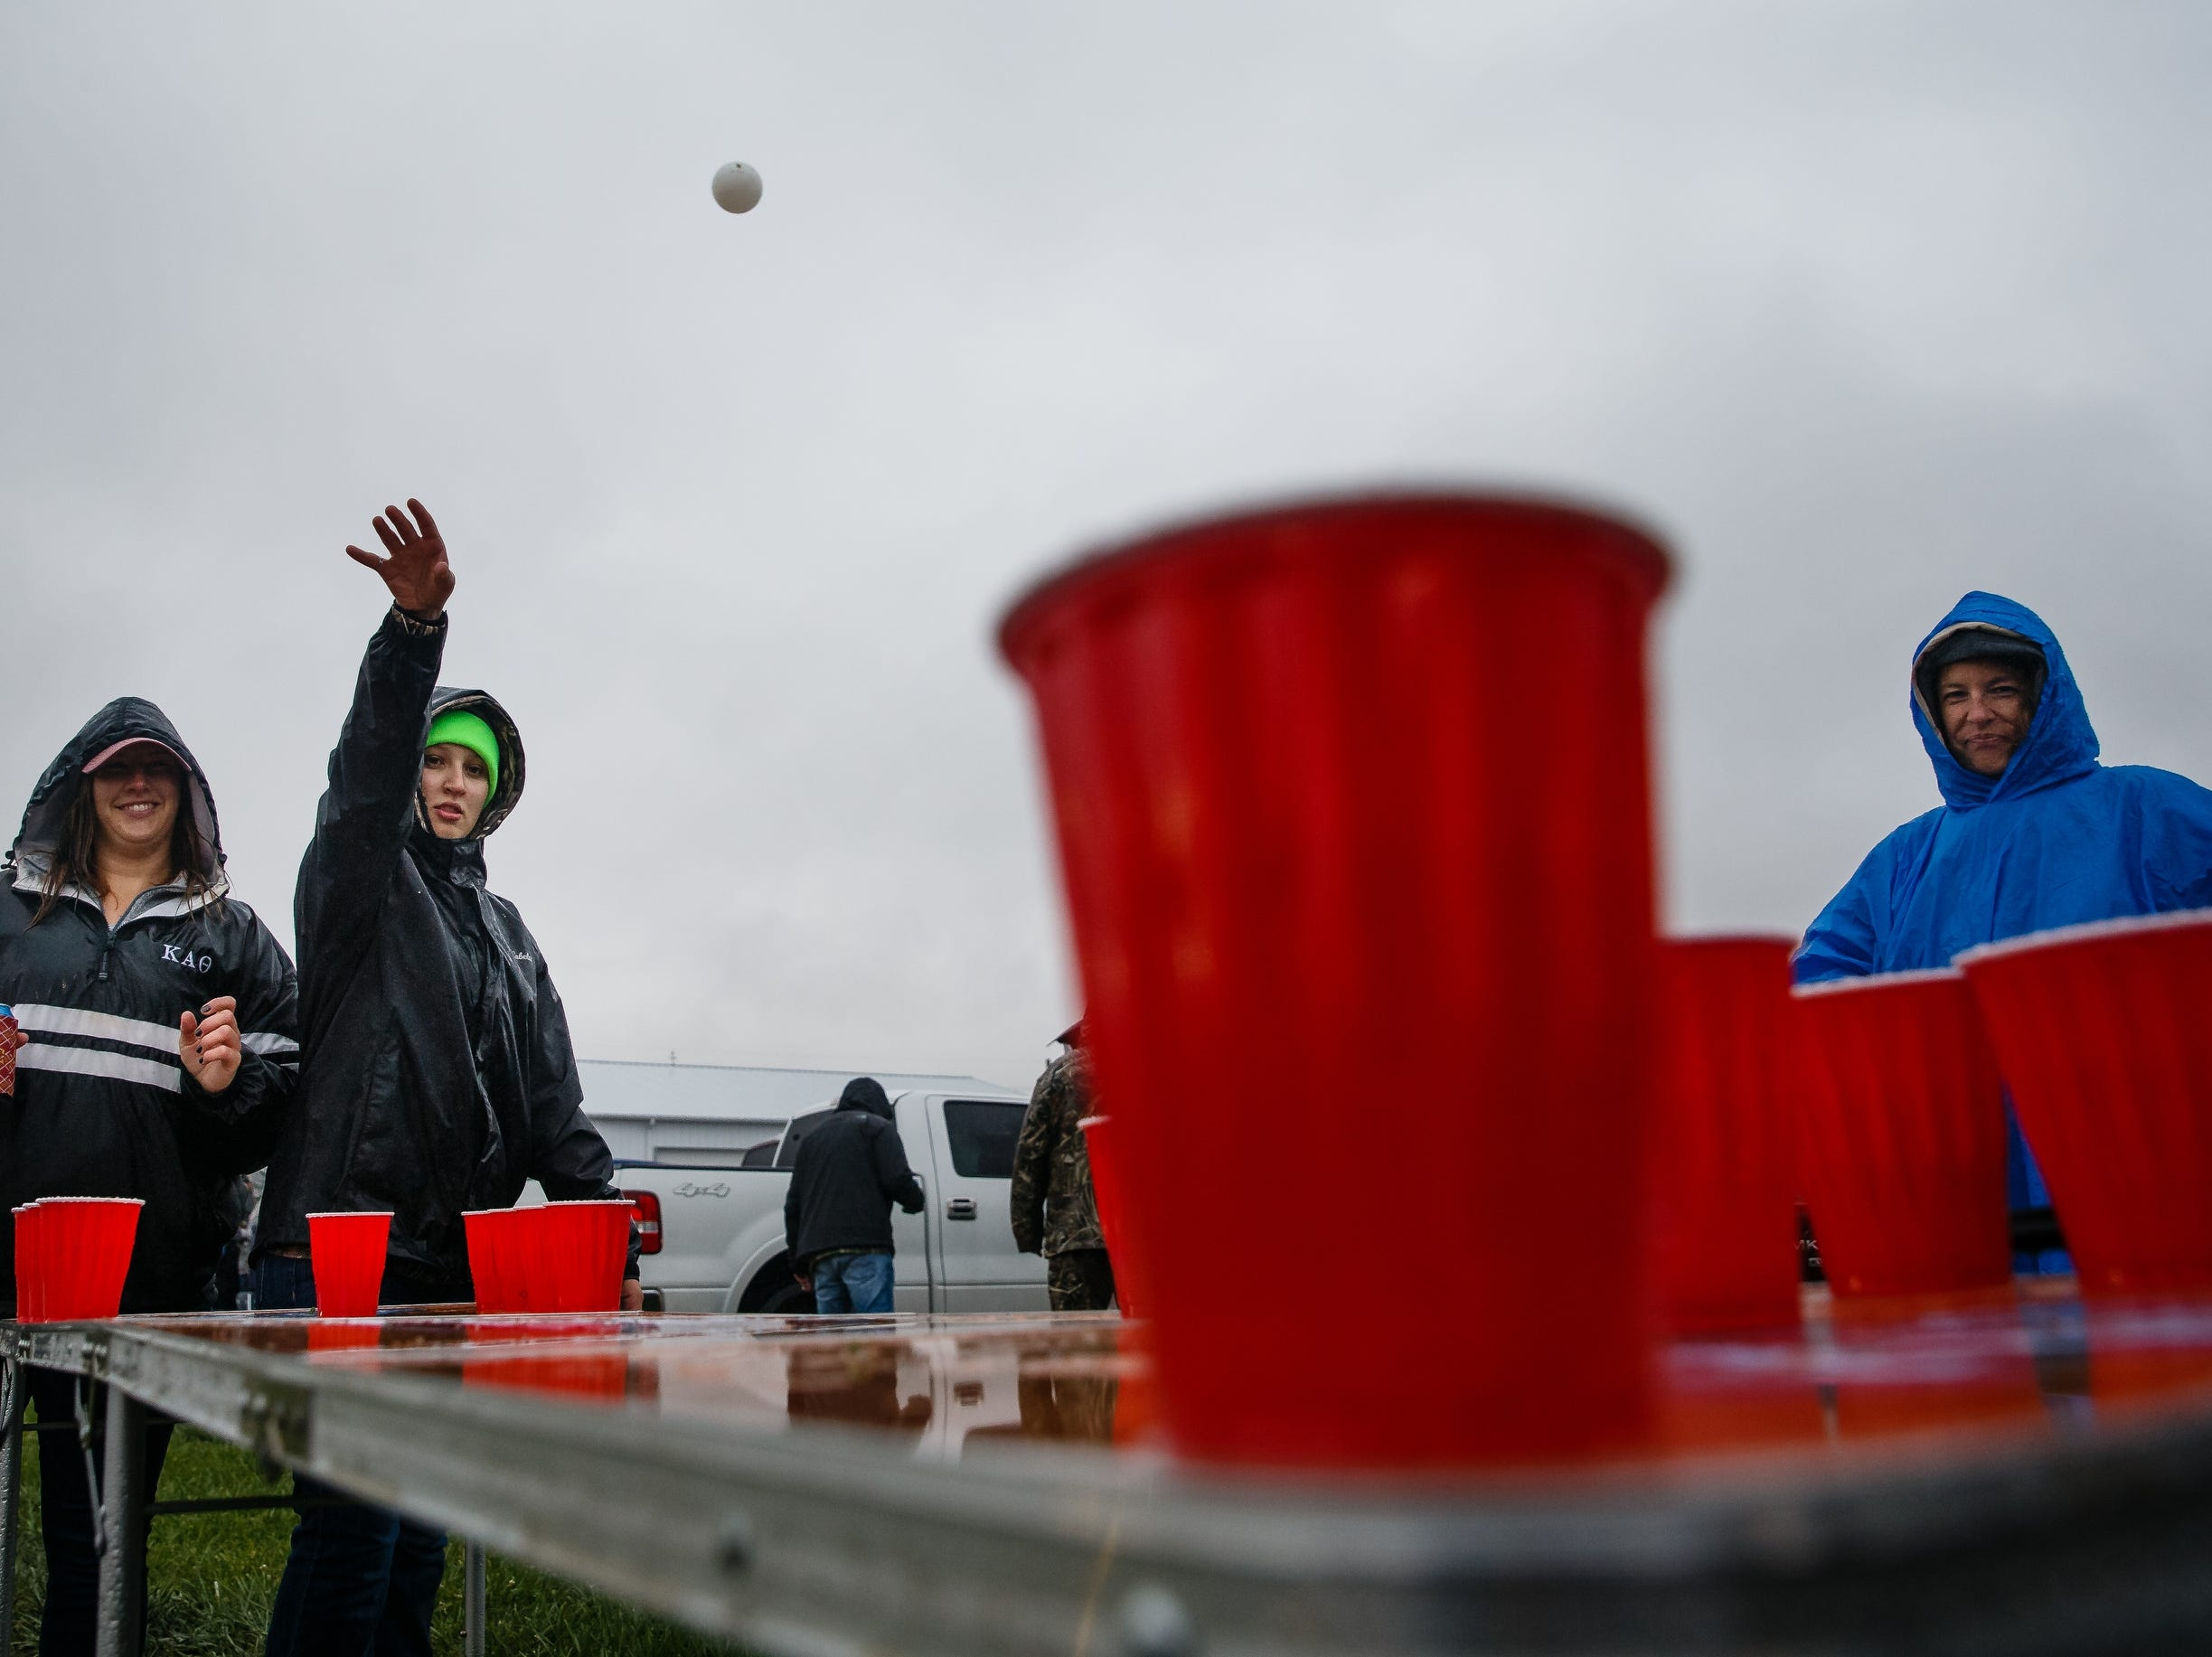 Allison Lane, 19 of Des Moines, throws a ping-pong ball as she and her sister Megan Lane, 28 of Des Moines, left, try to stay dry and have fun before the start of Luke Bryan's Farm Tour on Saturday, Sept. 29, 2018 in Boone.